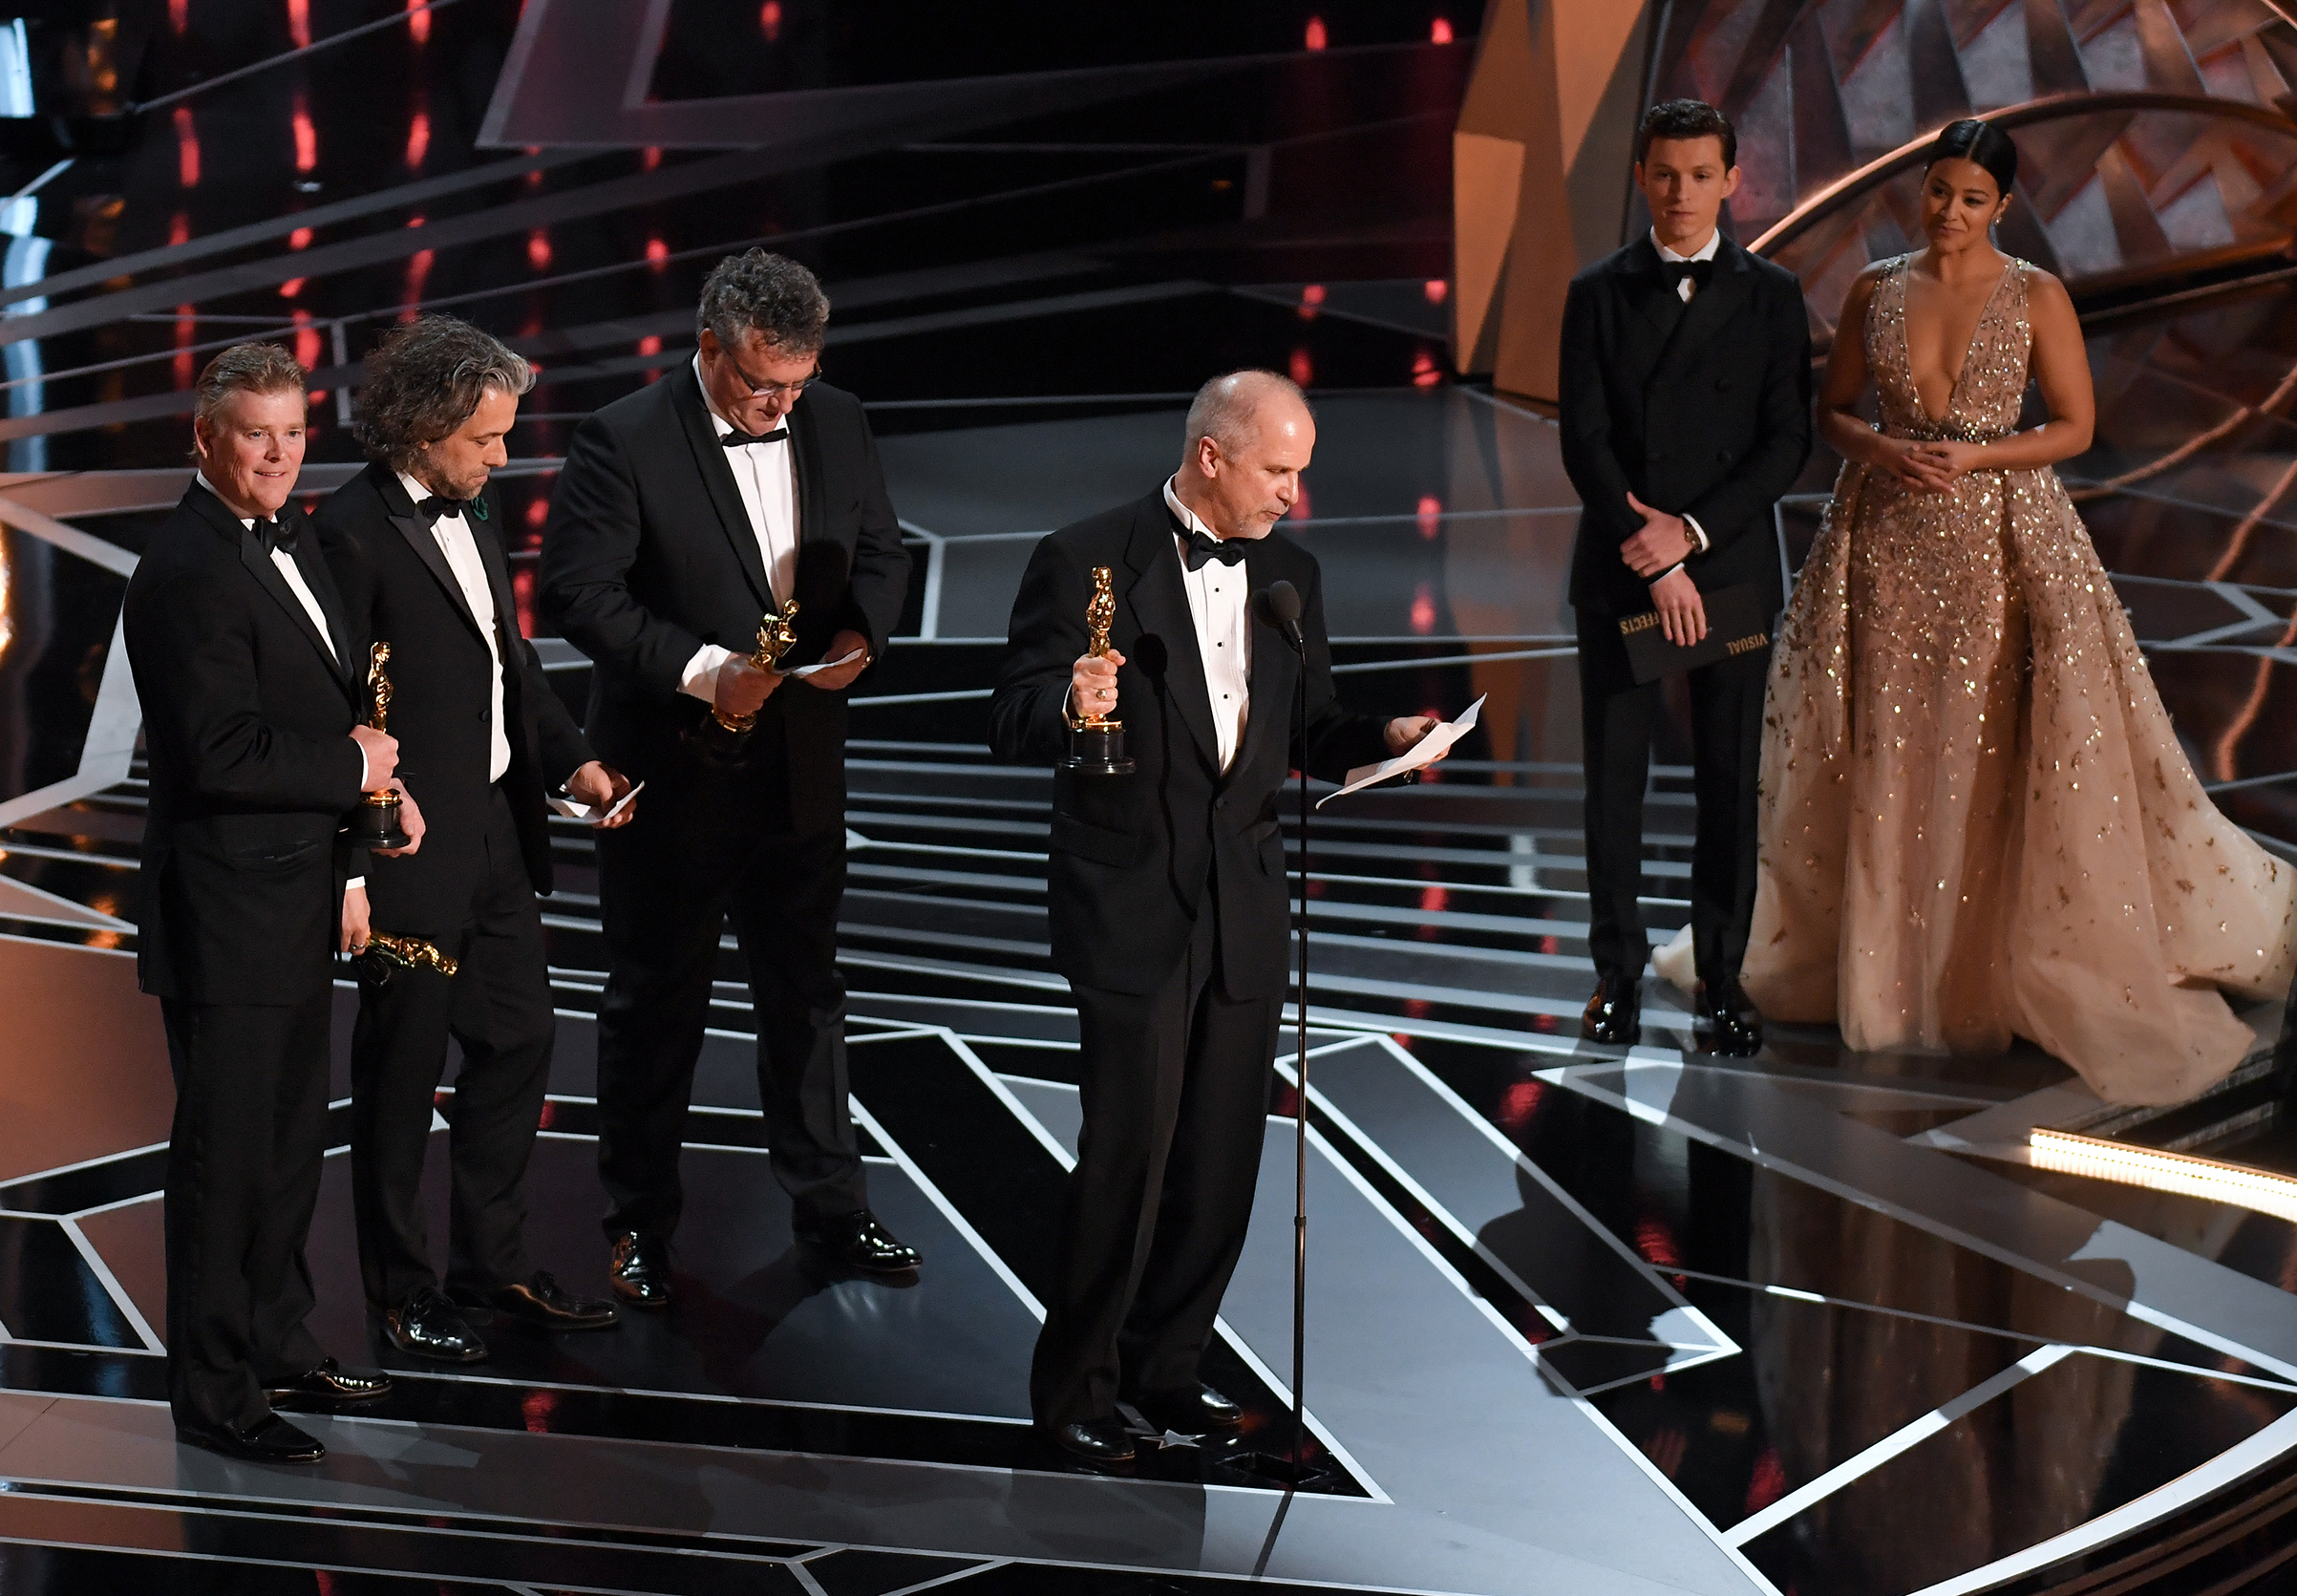 John Nelson, Paul Lambert, Richard R. Hoover, Gerd Nefzer accept the award for Visual Effects for 'Blade Runner 2049', at the 90th Annual Academy Awards.